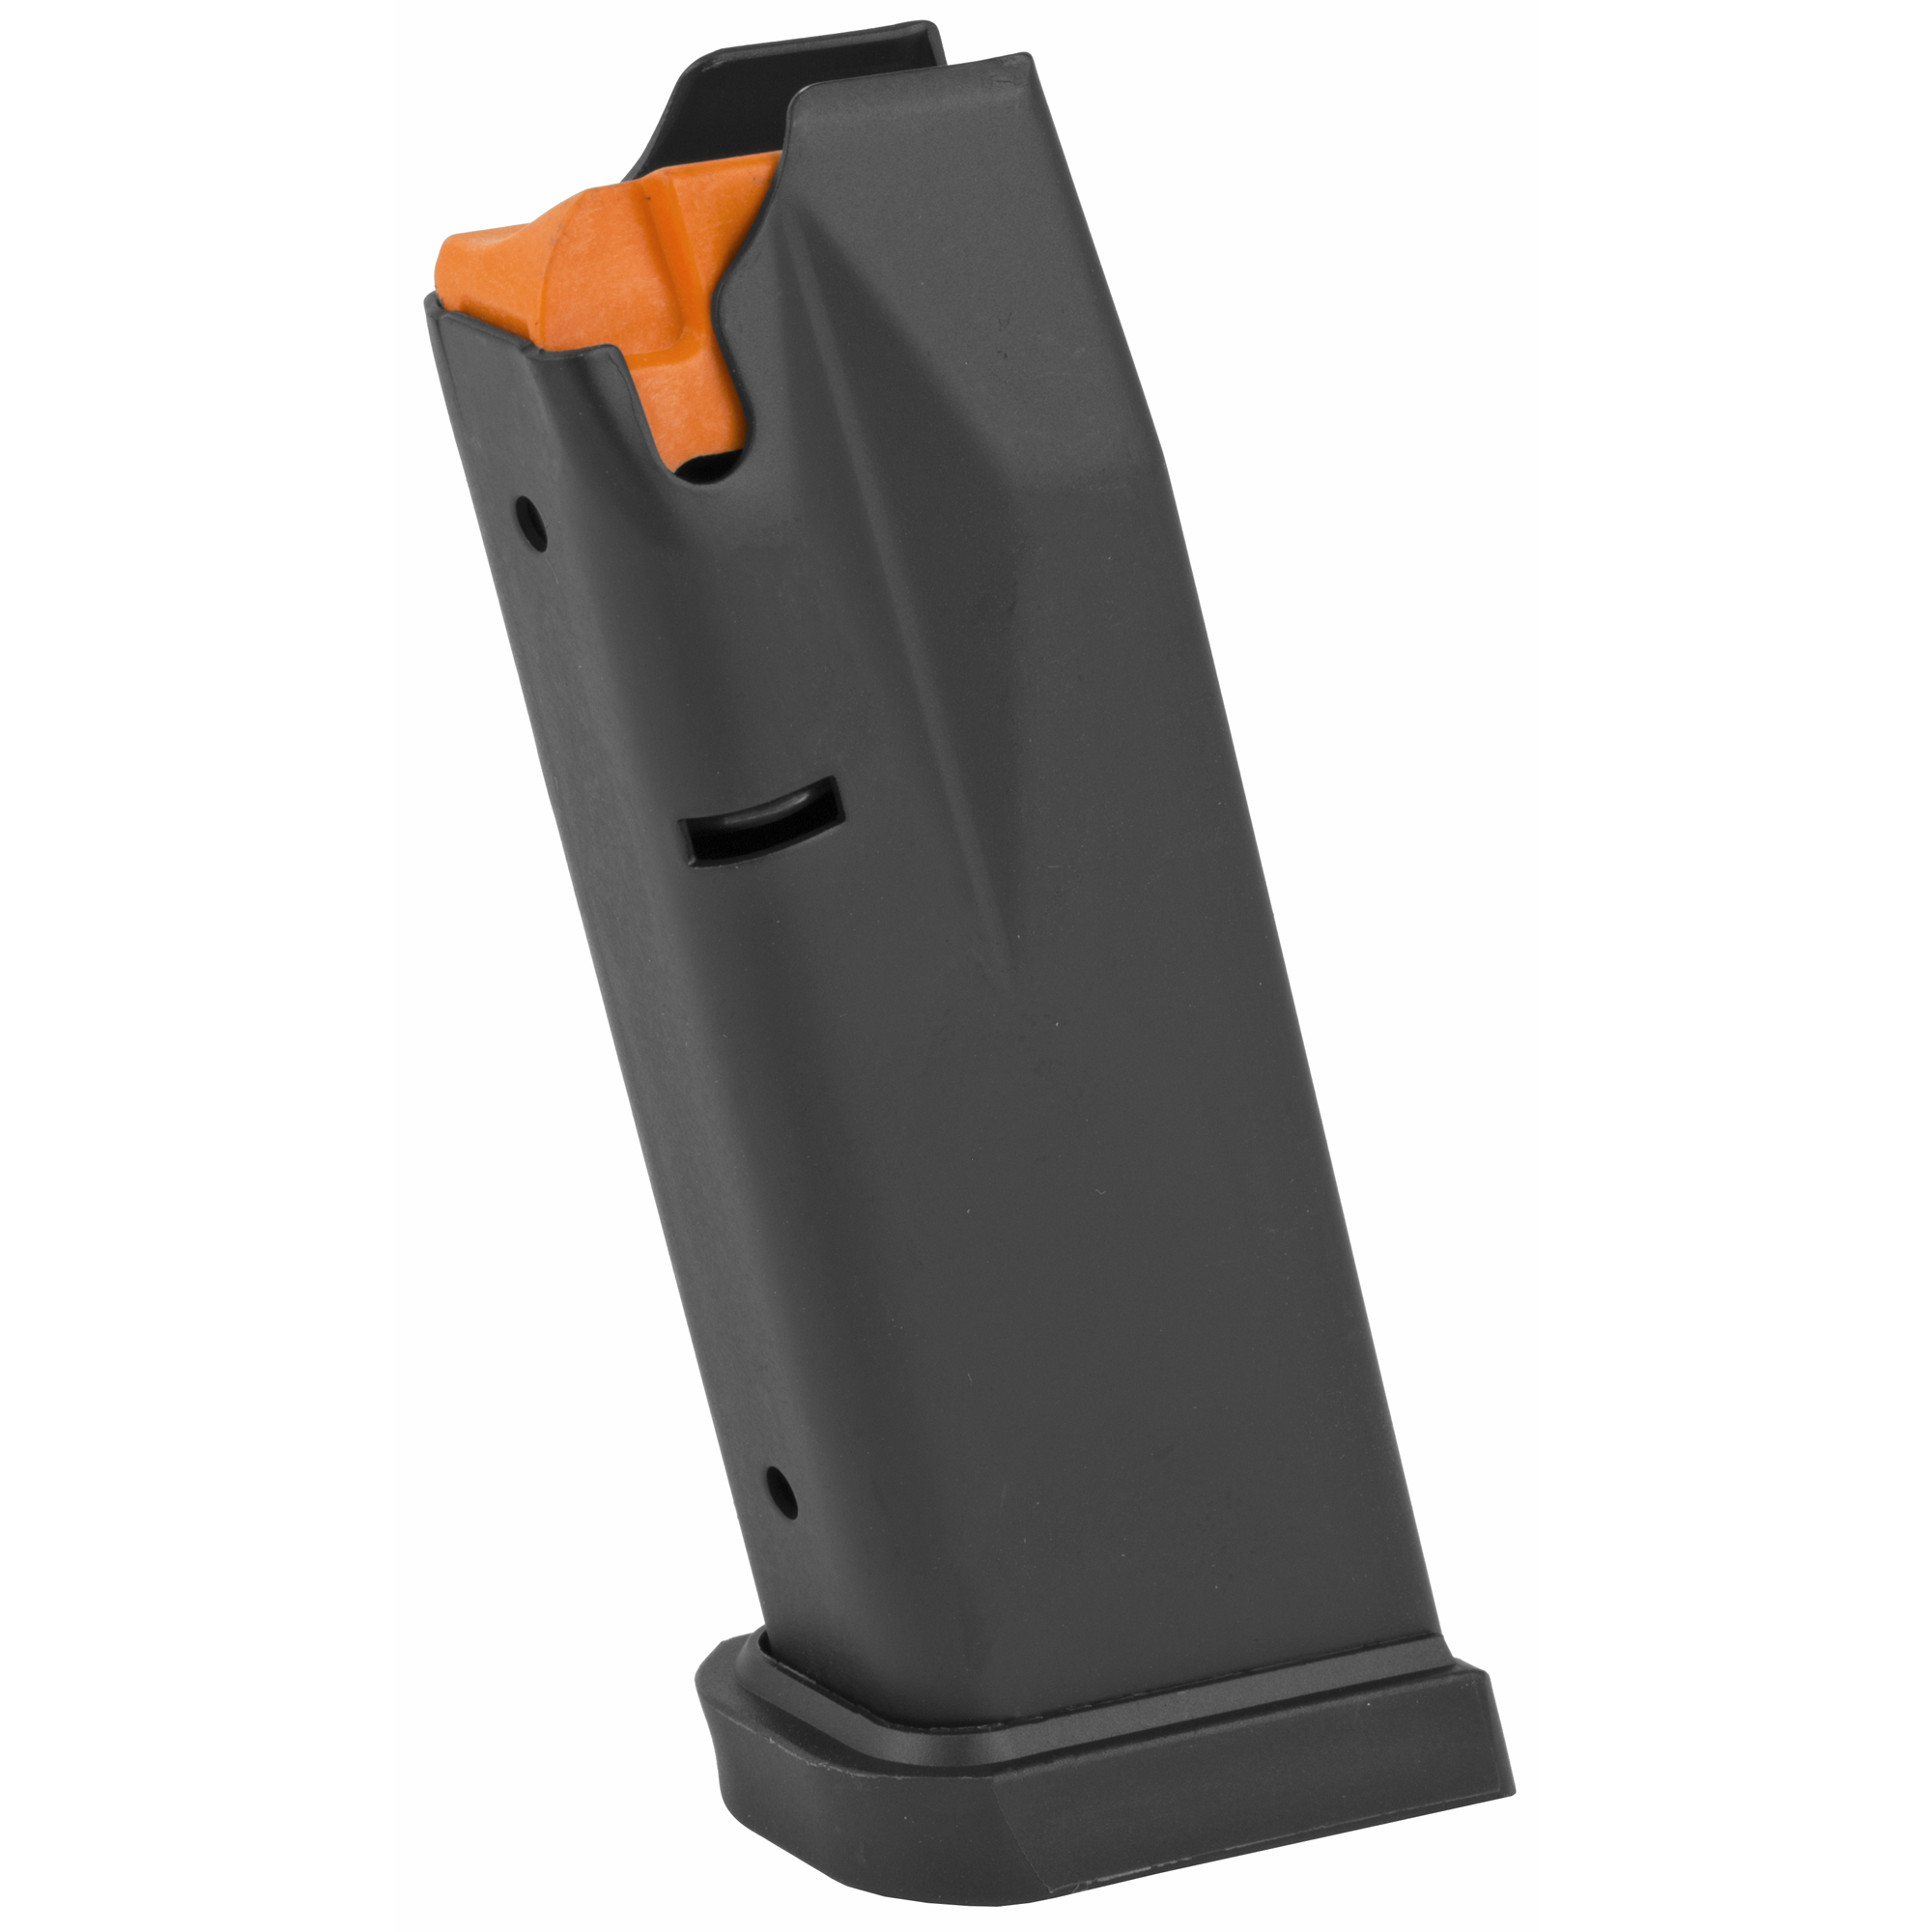 This magazine fits the AM2 and holds 12 rounds of 9mm ammunition. It features a metal alloy body and is made using the same manufacturing and materials as the original equipment magazines